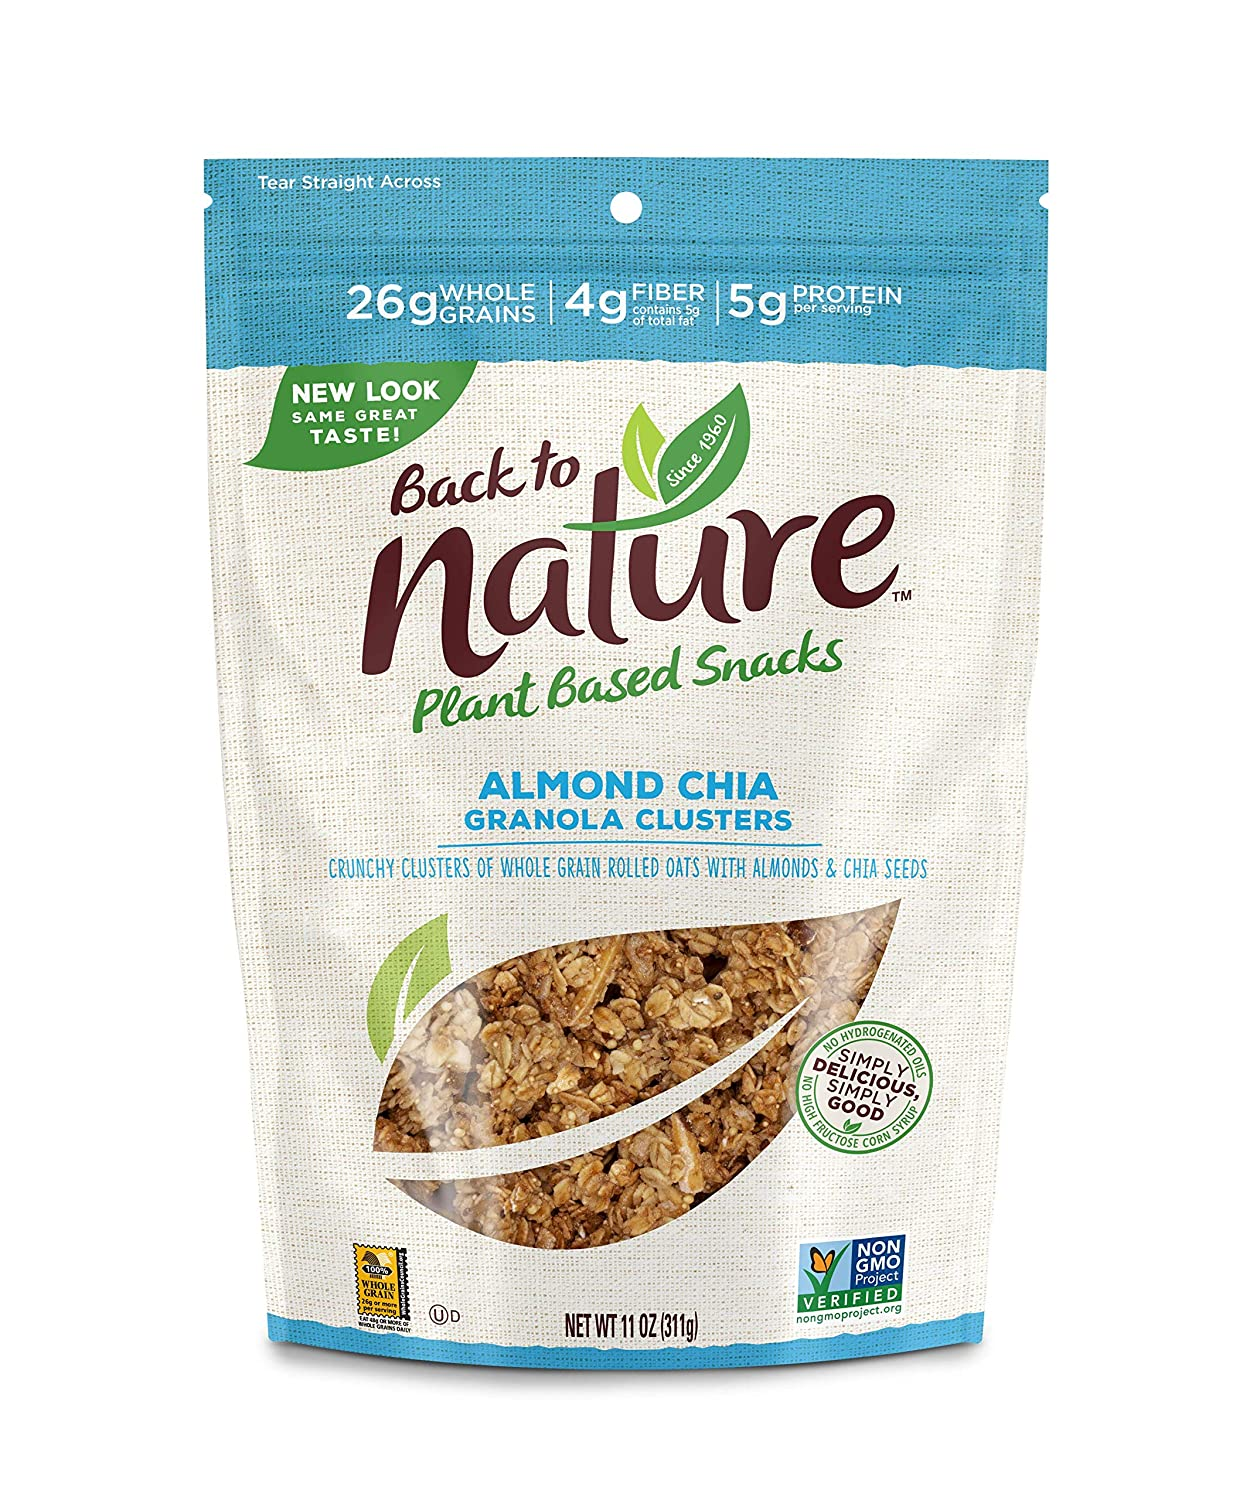 Back to Nature Granola Clusters, Non-GMO Almond Chia, 11 Ounce (Packaging May Vary)